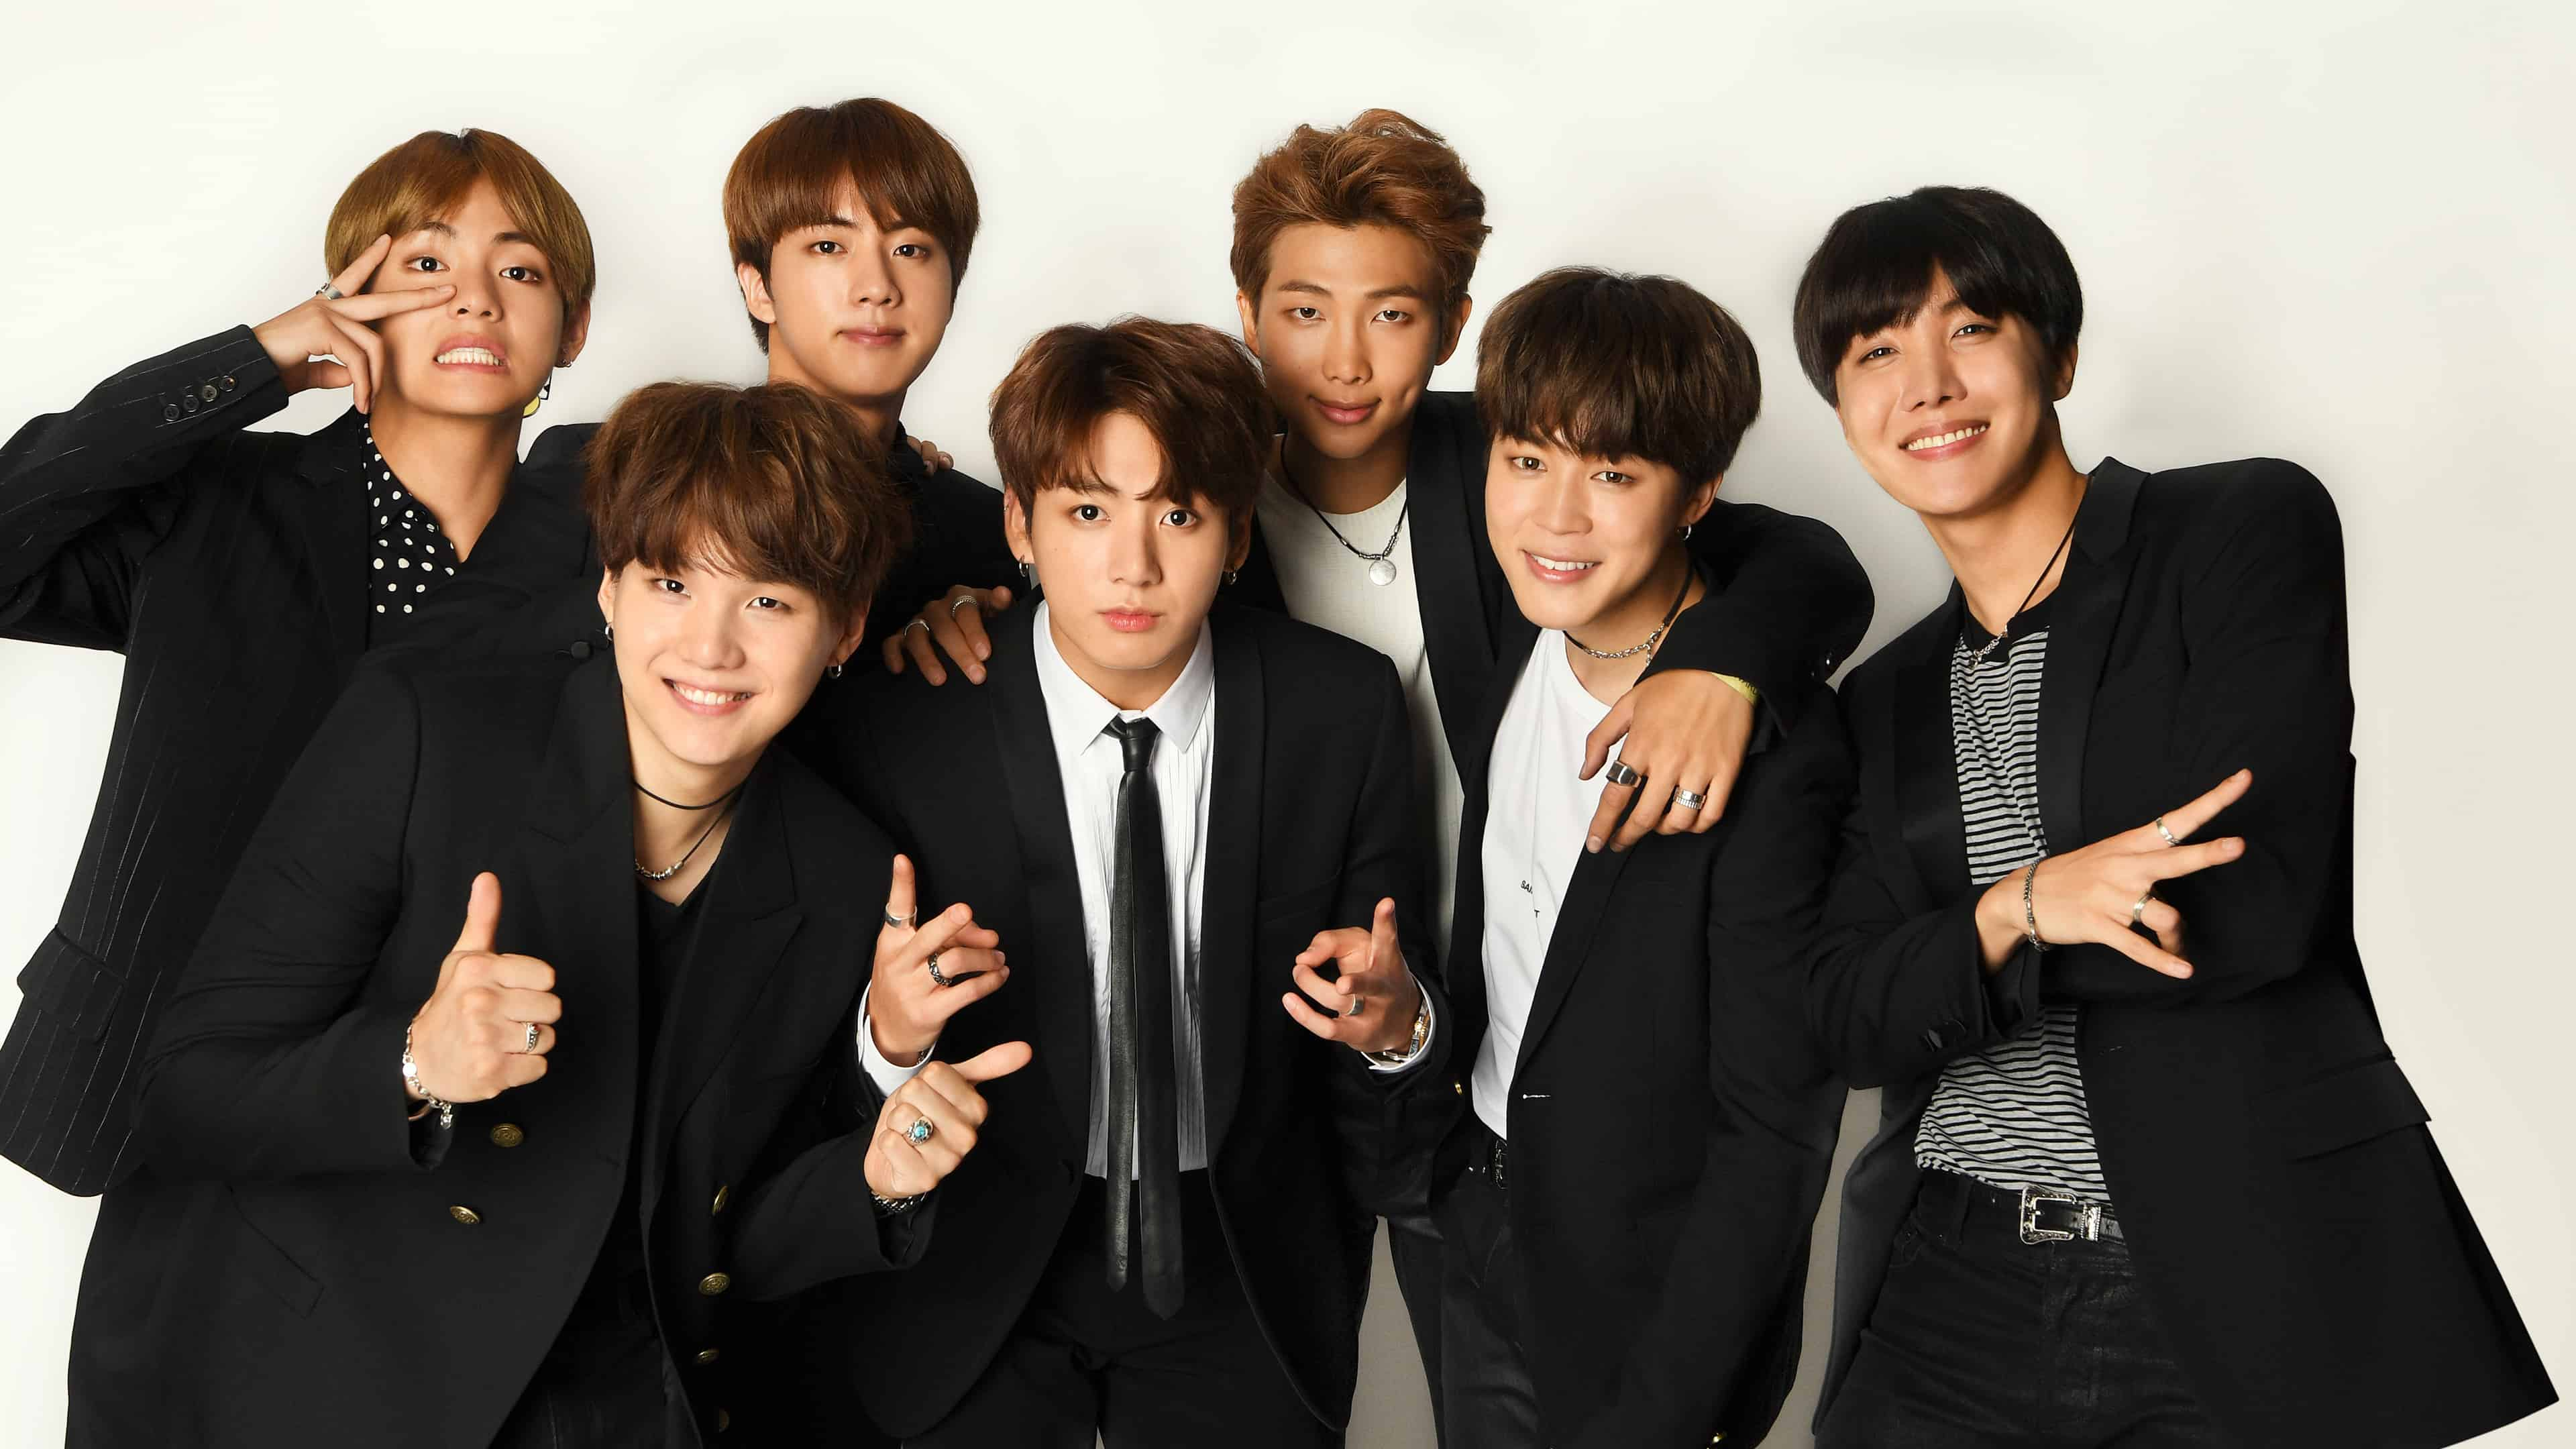 Download 55 Koleksi Wallpaper Bts Hd Paling Keren